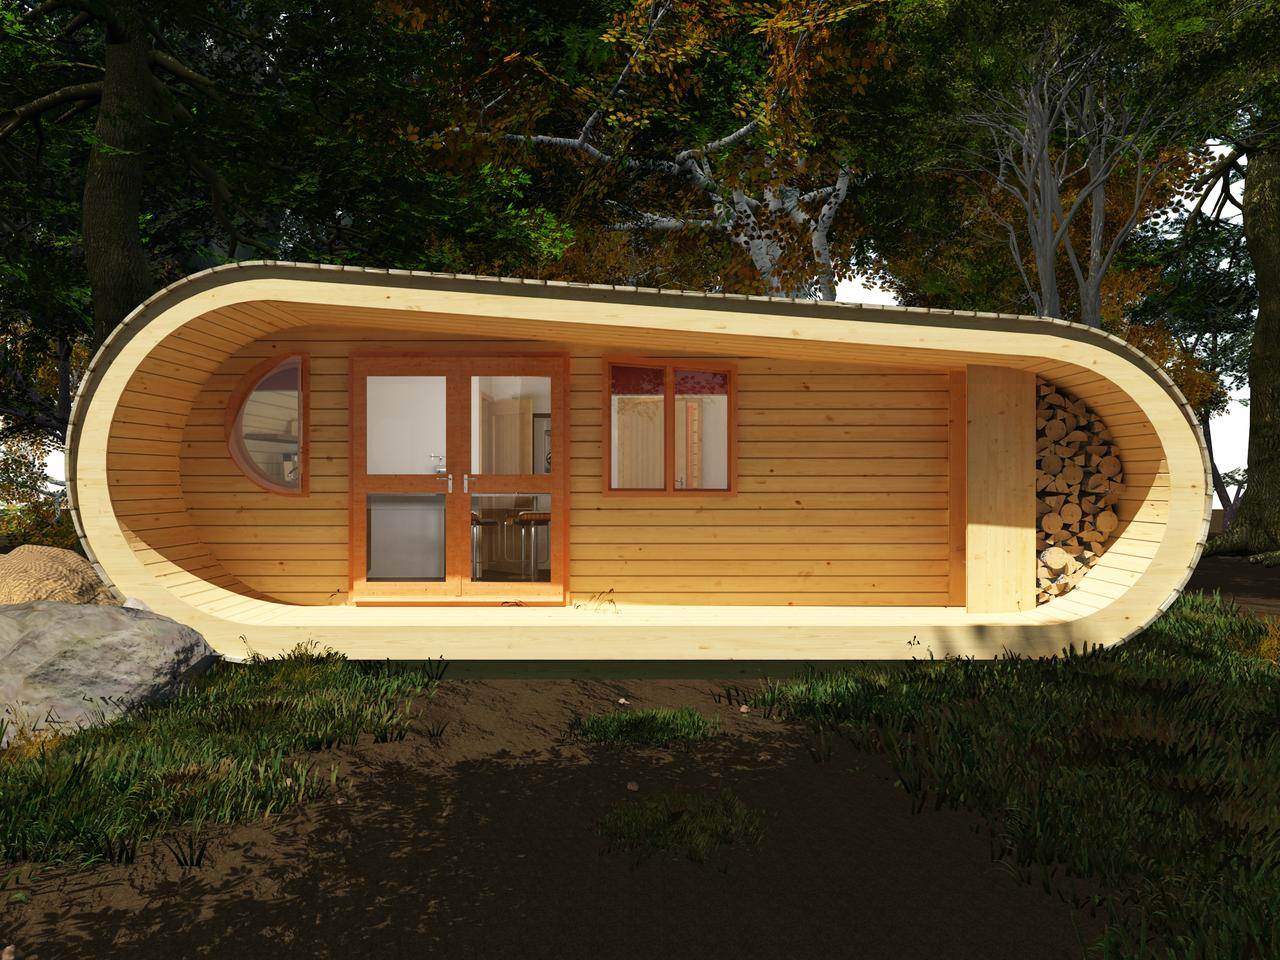 The retreat is designed to sit harmoniously within its environment, whether that be resting on the earth or perched amongst the tree tops